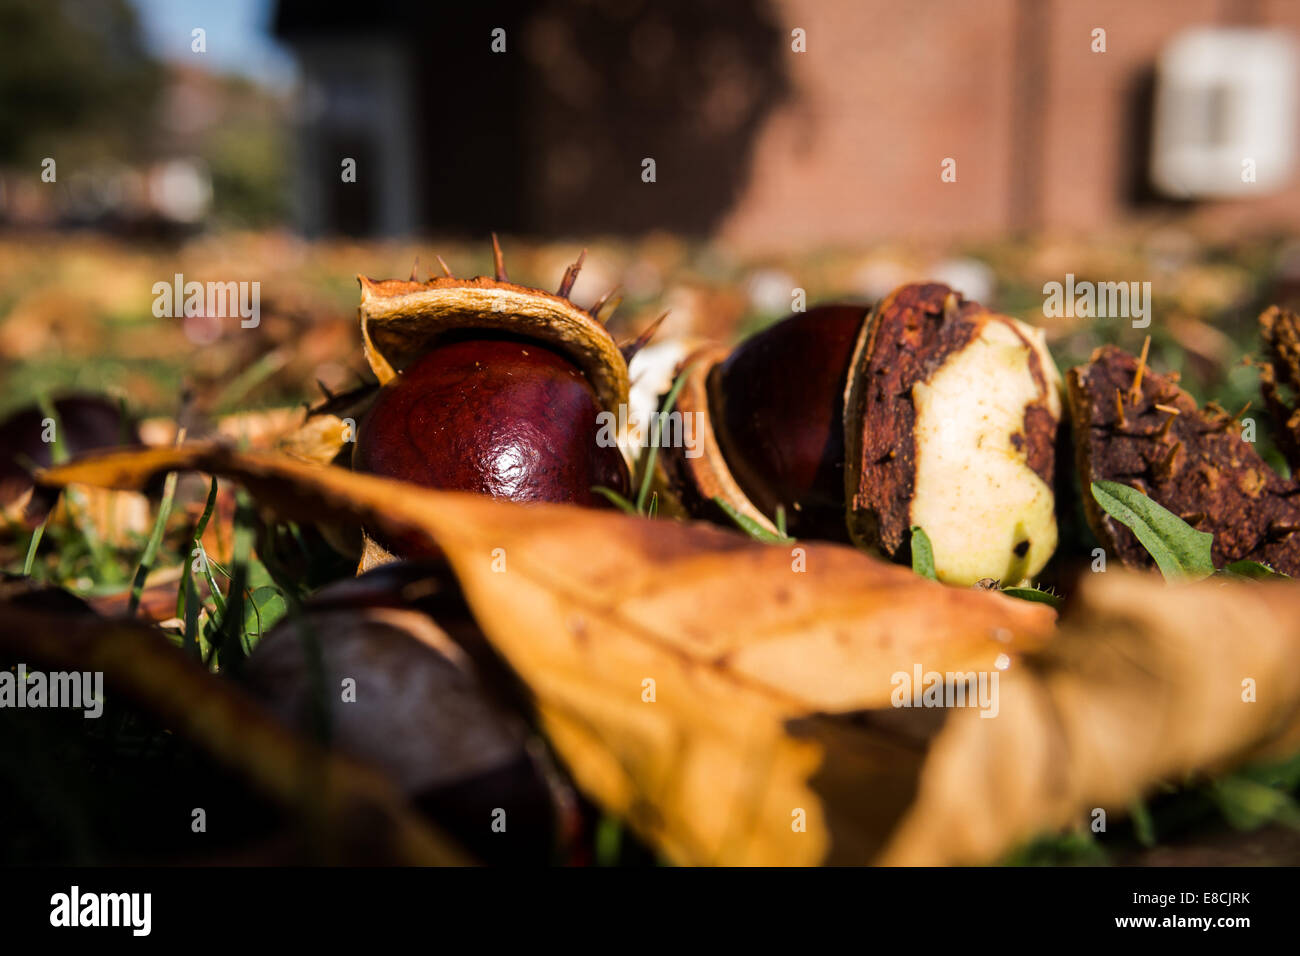 Conkers - Stock Image